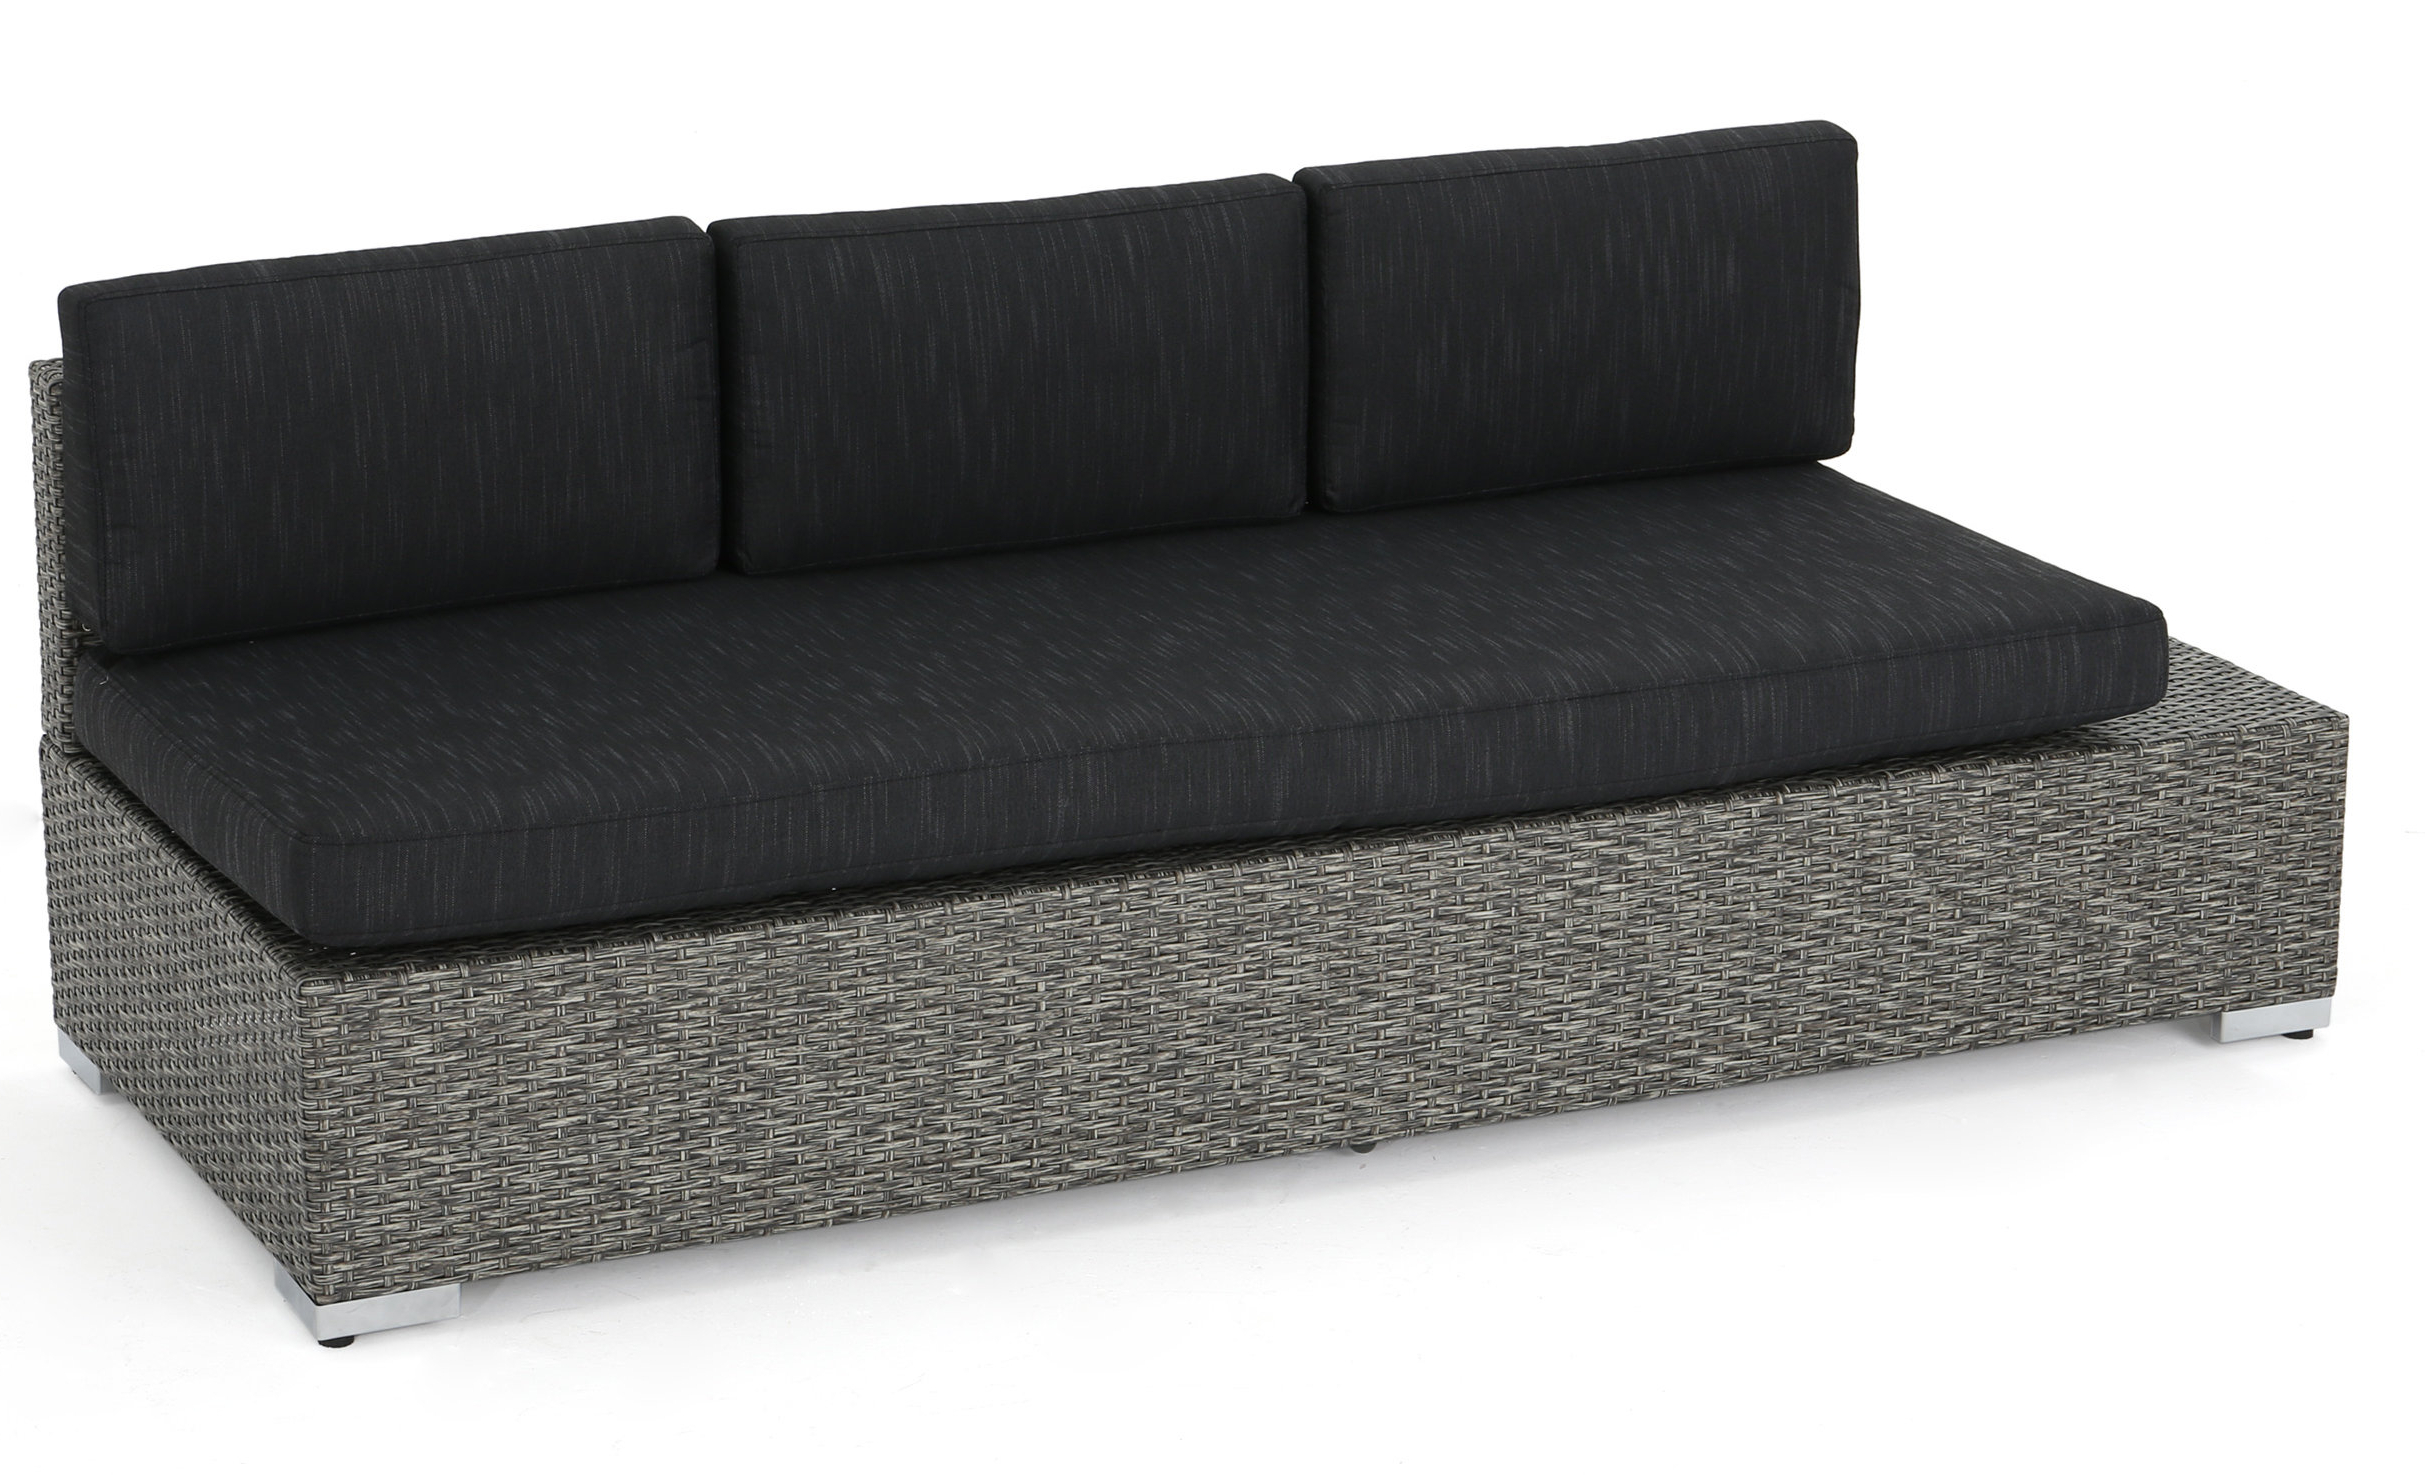 Well Liked Yoselin Patio Sofas With Cushions With Regard To Furst Patio Sofa With Cushion (View 18 of 20)